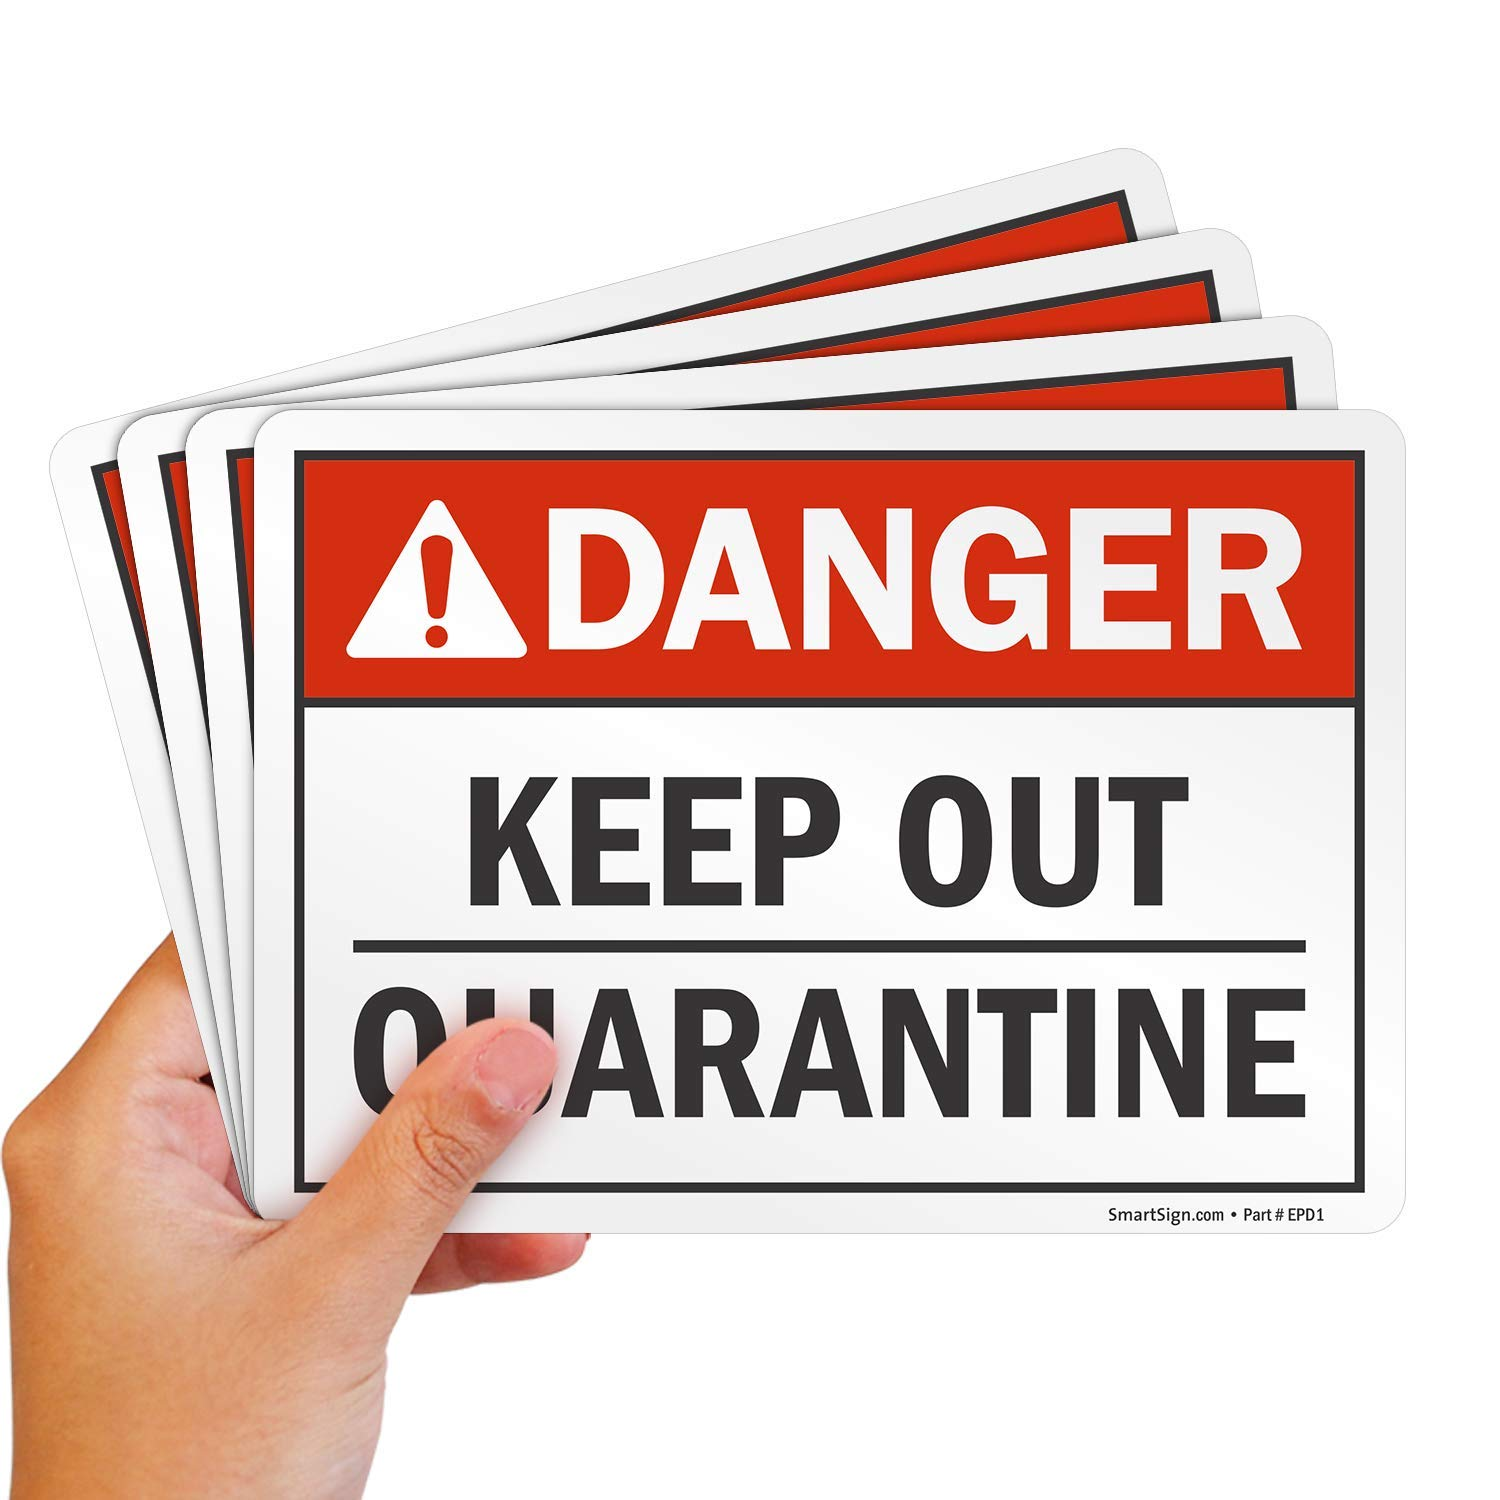 """SmartSign """"Danger - Keep Out, Quarantine"""" Label 